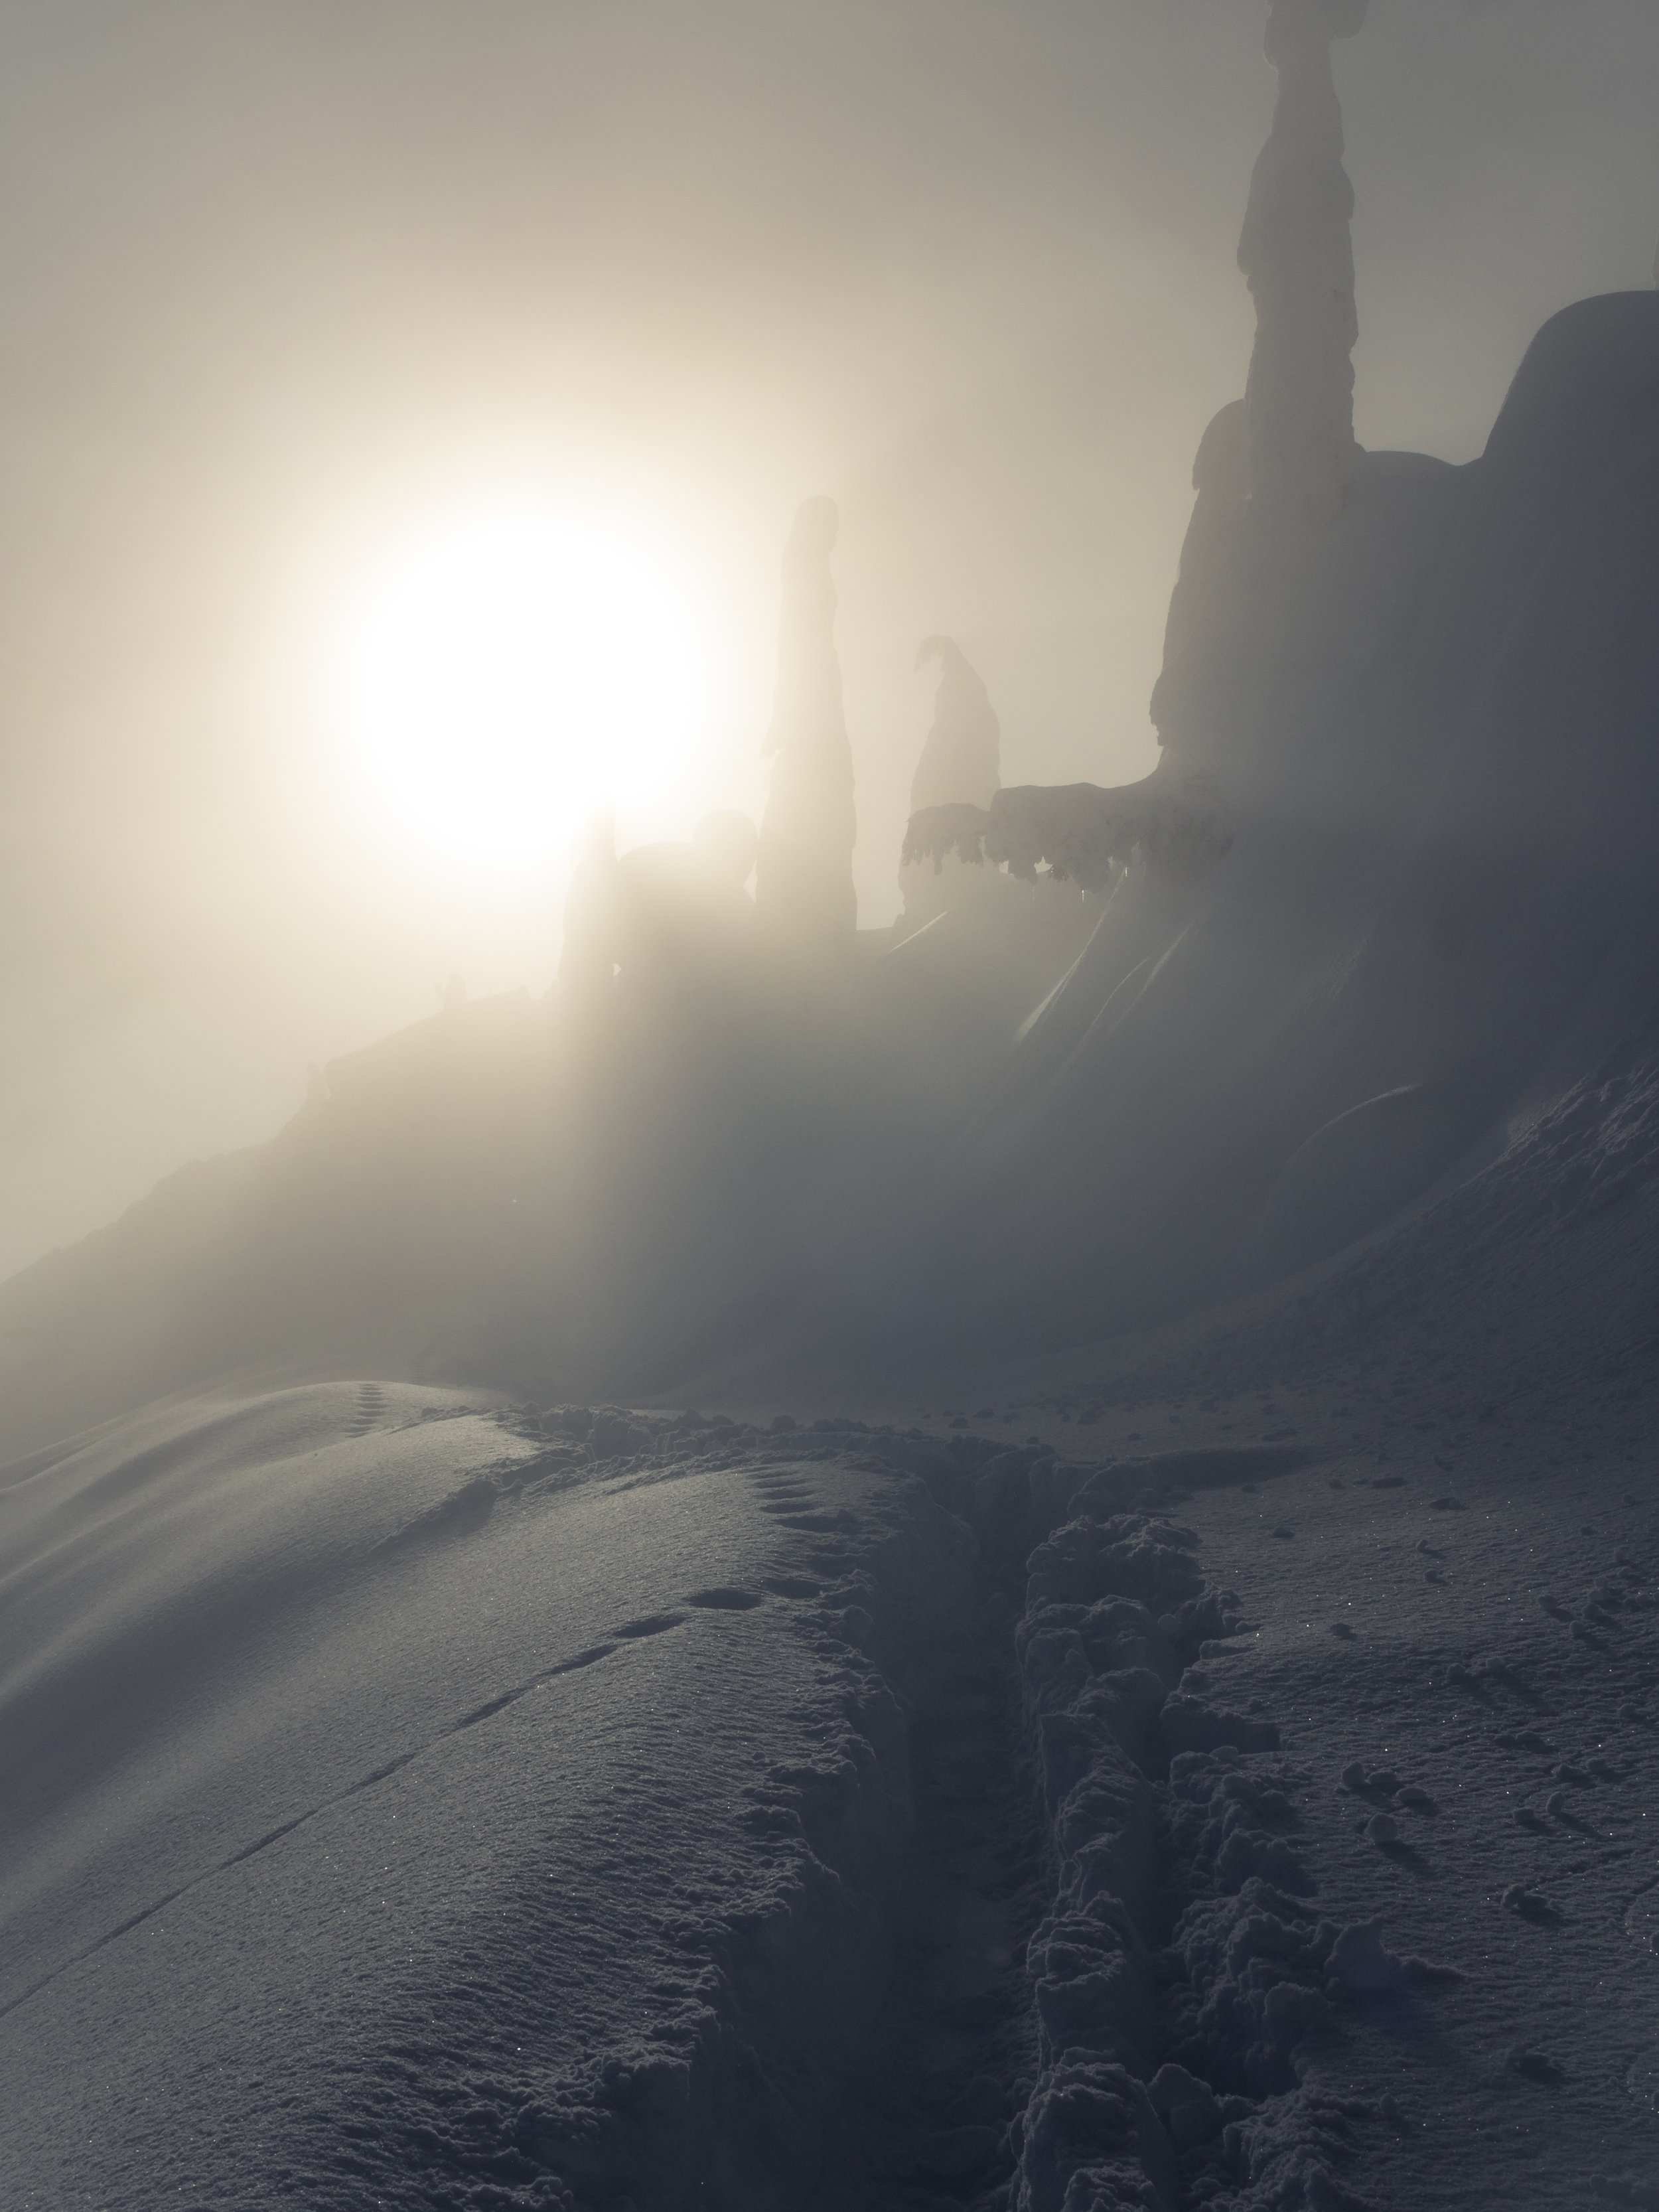 Boot Pack Hiking Trail in Deep Powder Snow with Sun Rays in Hazy Fog Cloud